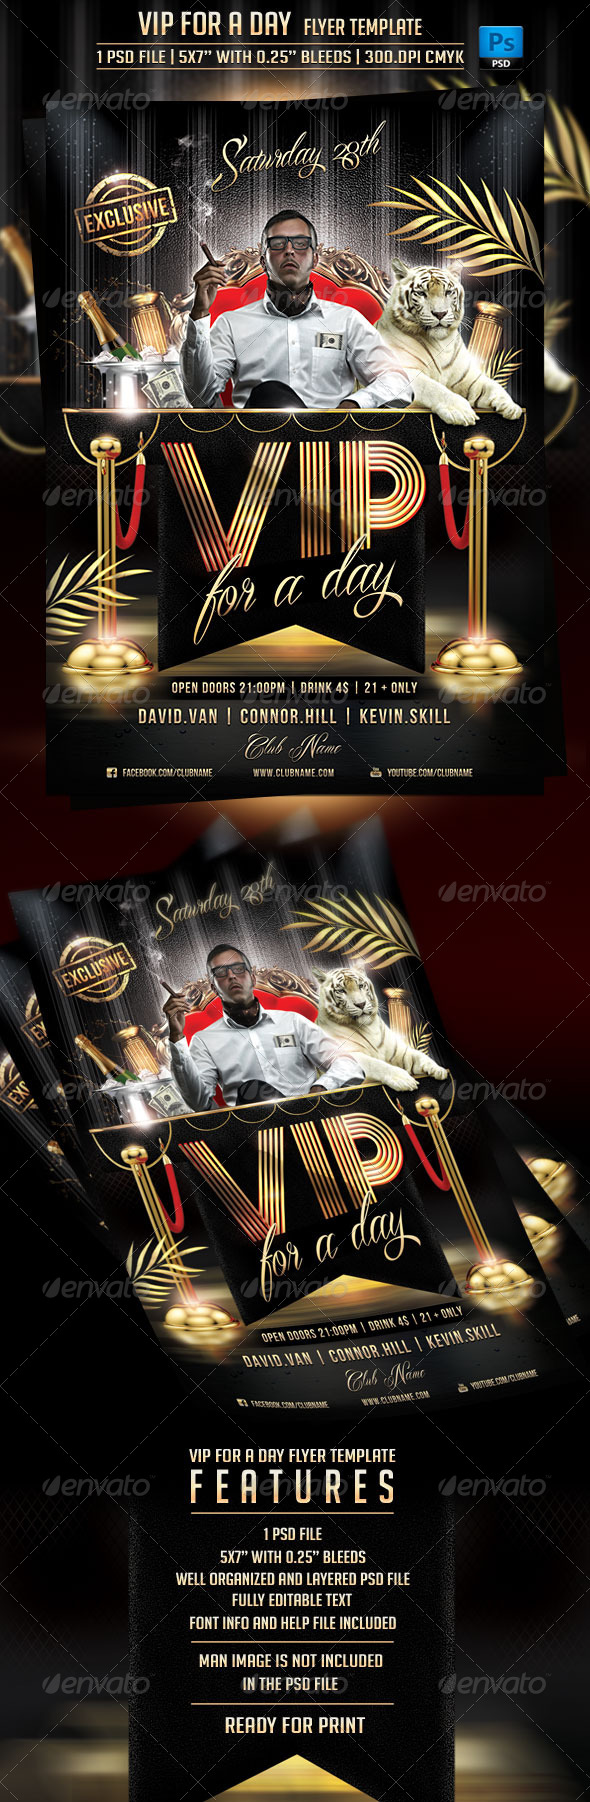 GraphicRiver VIP For a Day Flyer Template 6837786